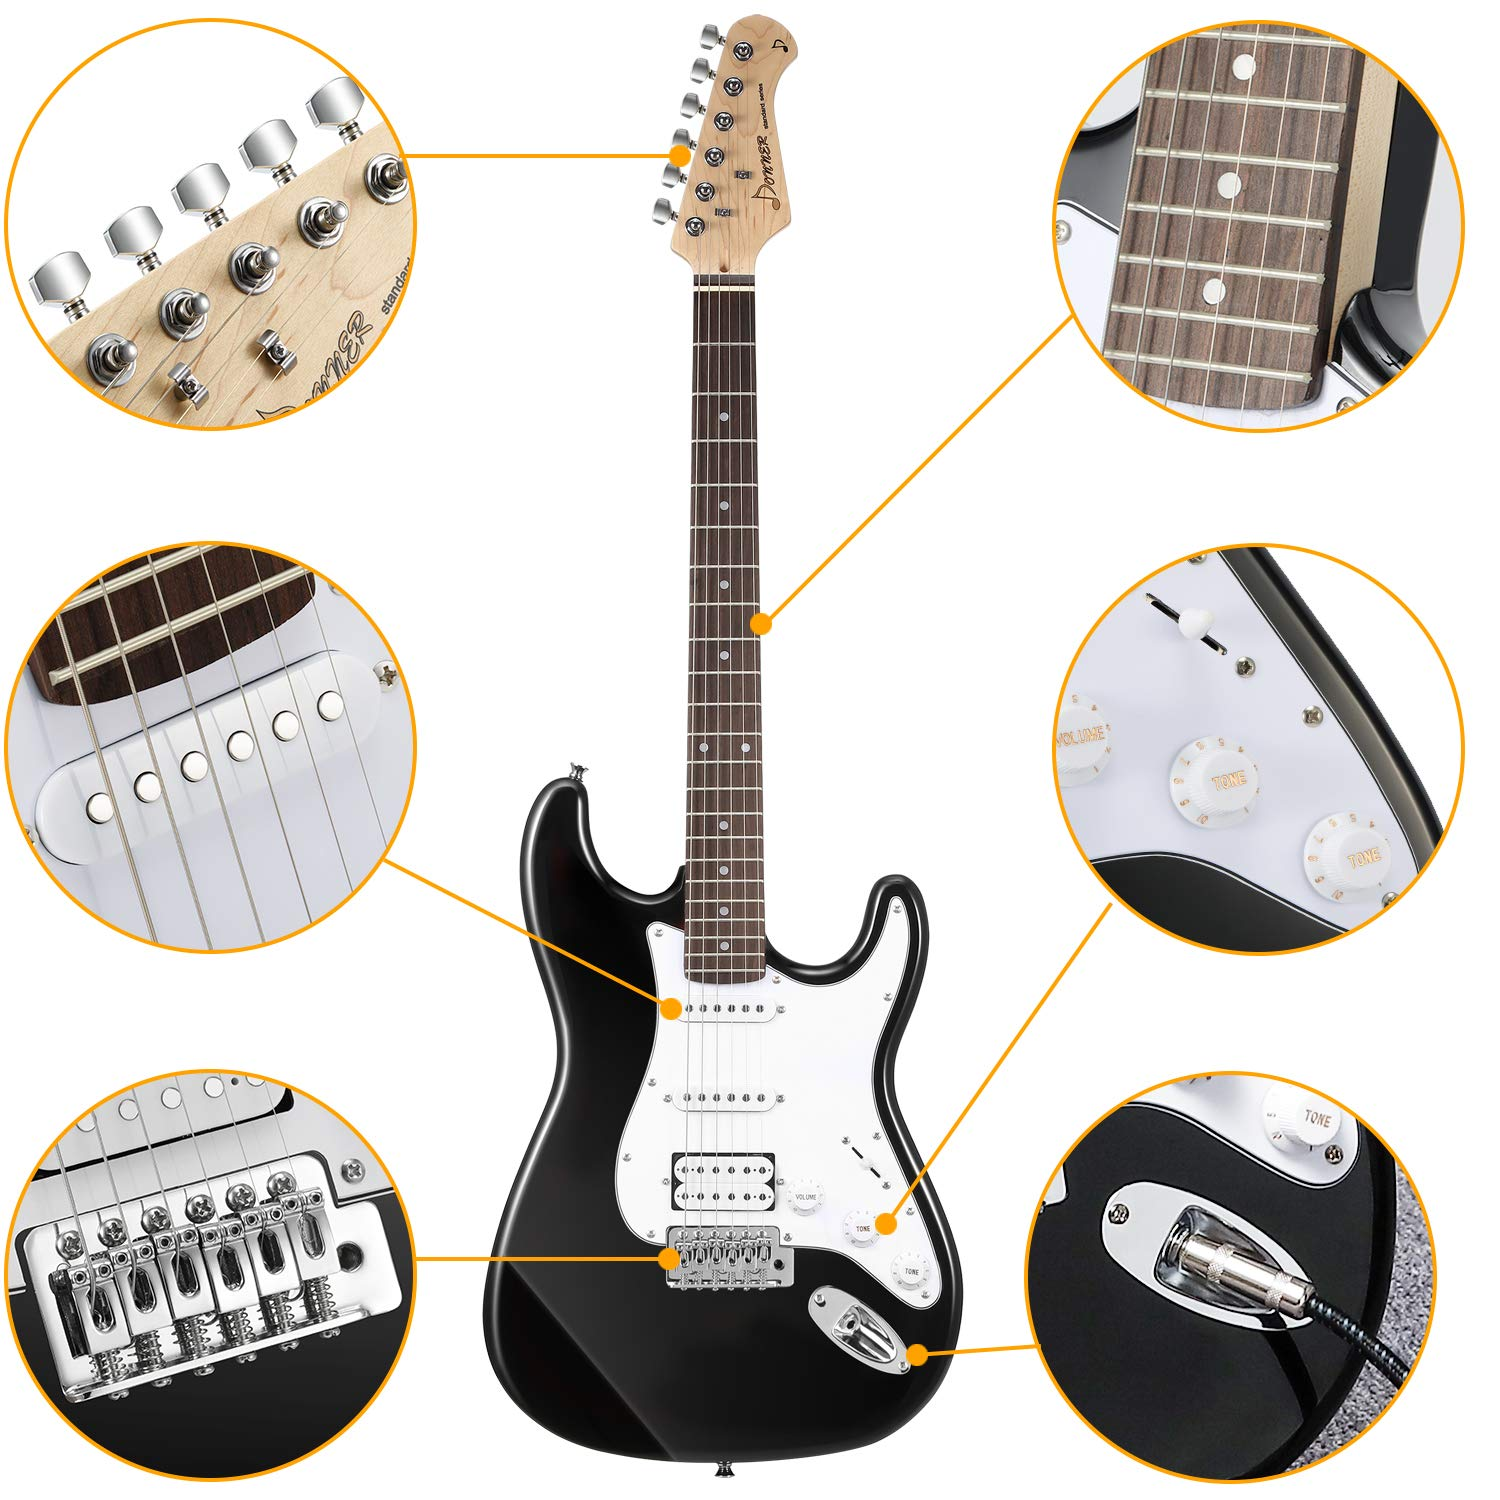 Close-up of different parts of the Donner DST-1B Black Electric Guitar